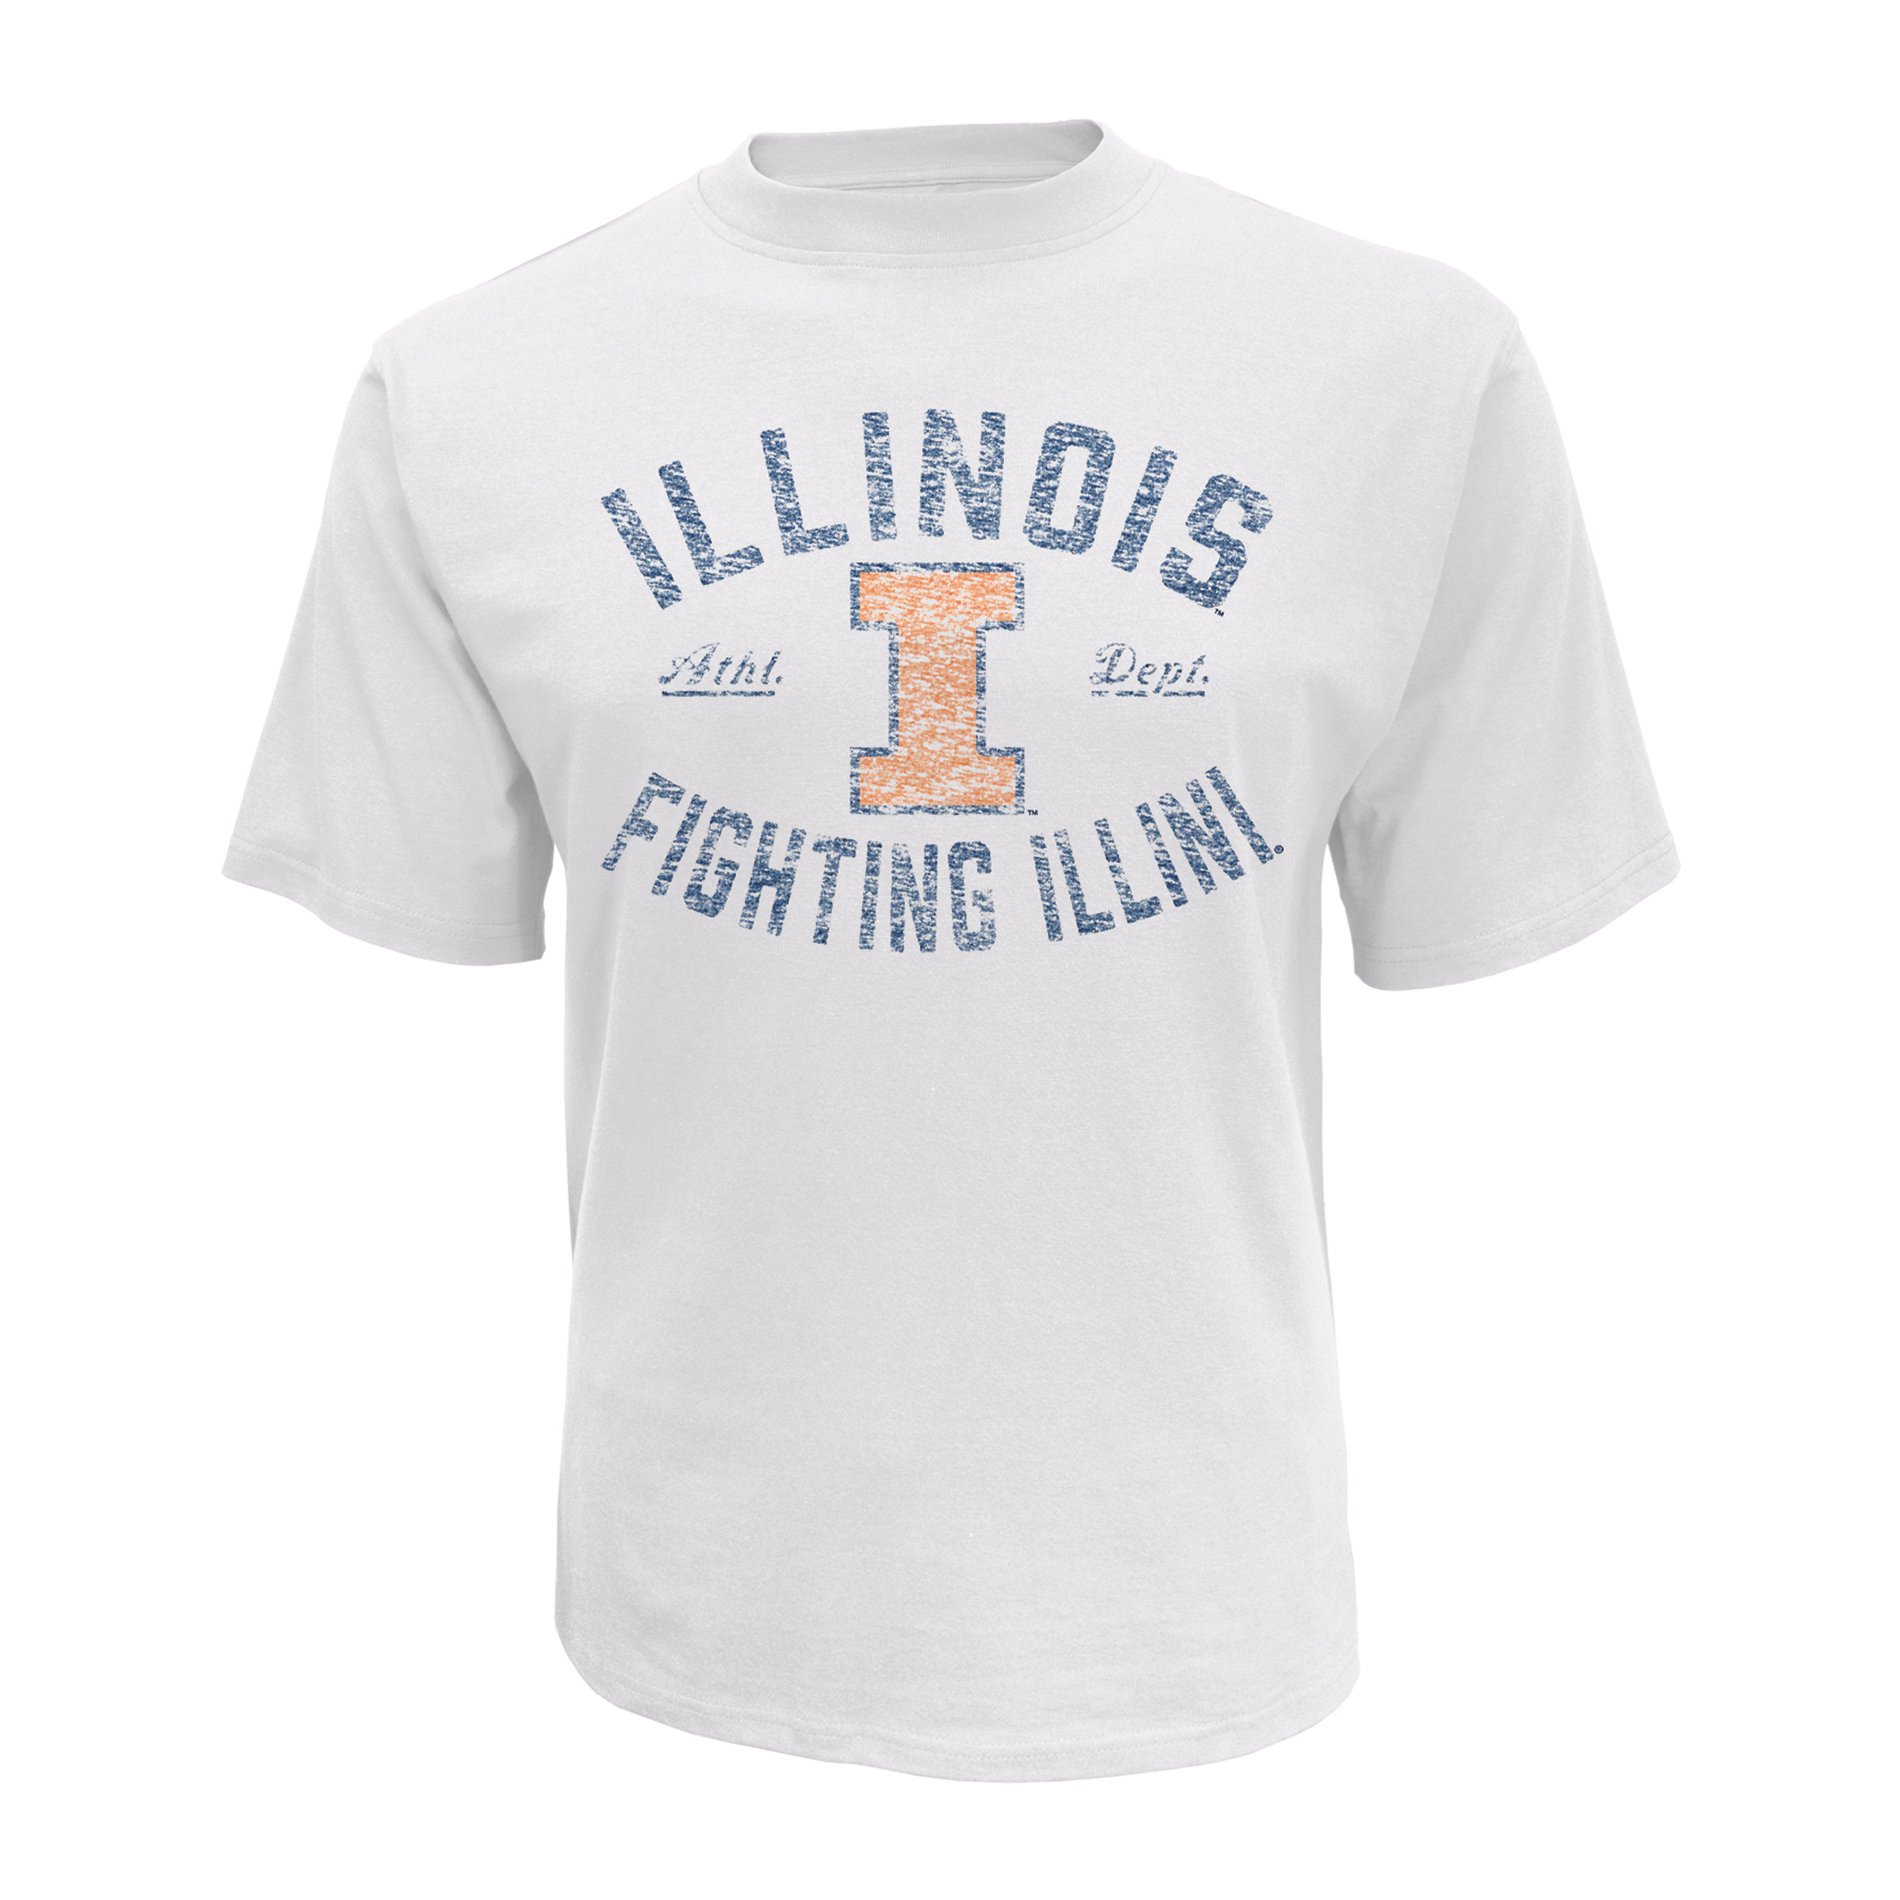 NCAA Men's Big & Tall Graphic T-Shirt - Illinois Fighting Illini, Size: 4XL